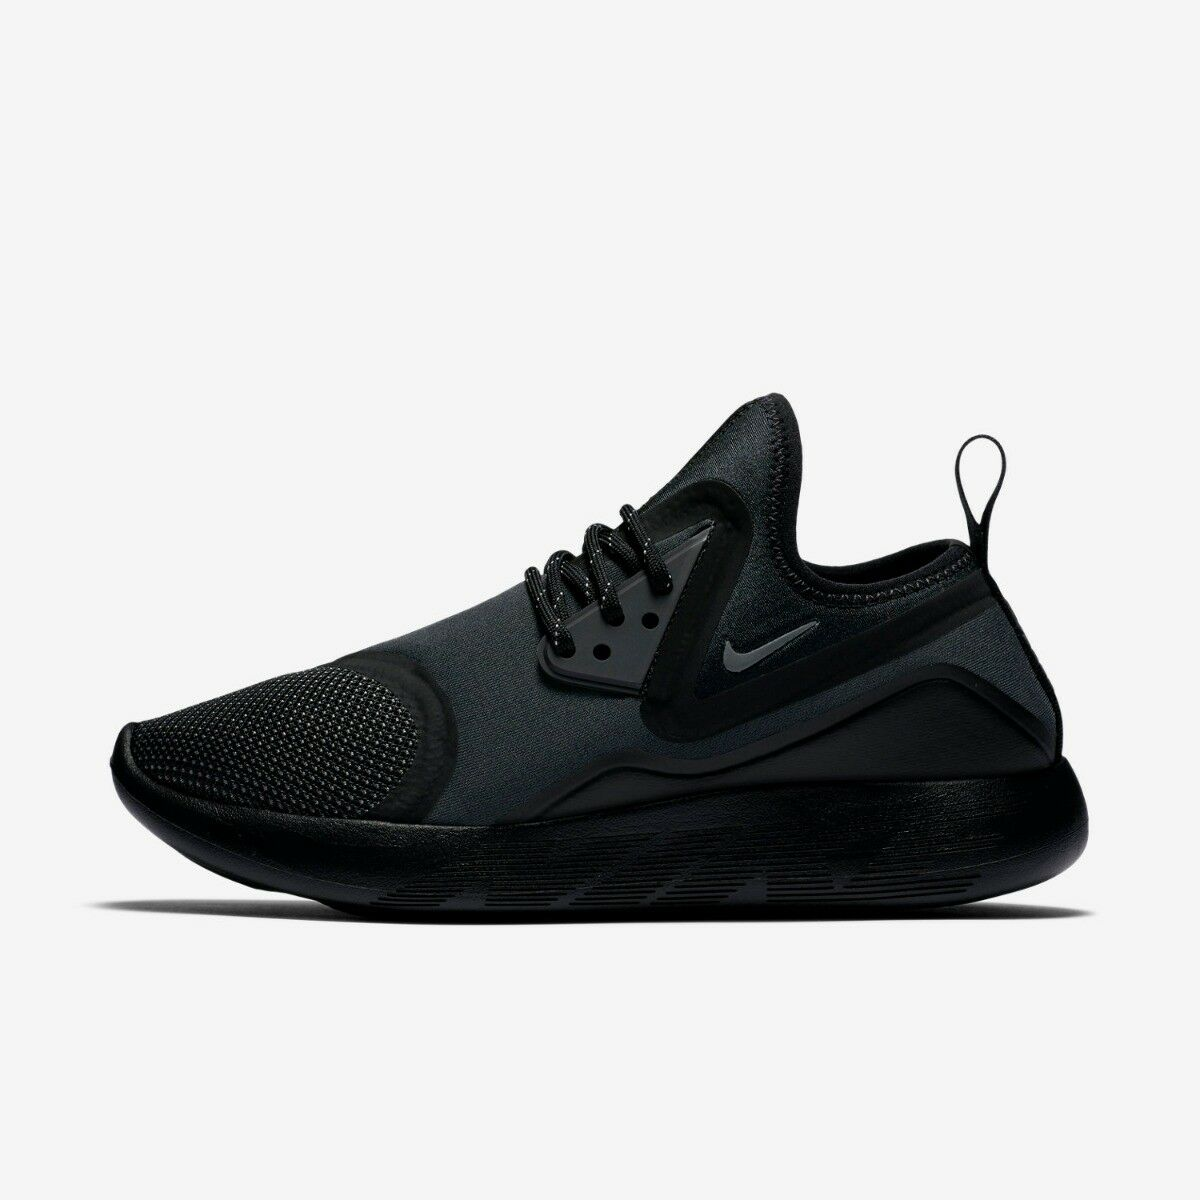 NIKE LUNARCHARGE ESSENTIAL WOMENS 3-7 RUNNING TRAINER SHOE SIZE 3-7 WOMENS BLACK NEW e3a833